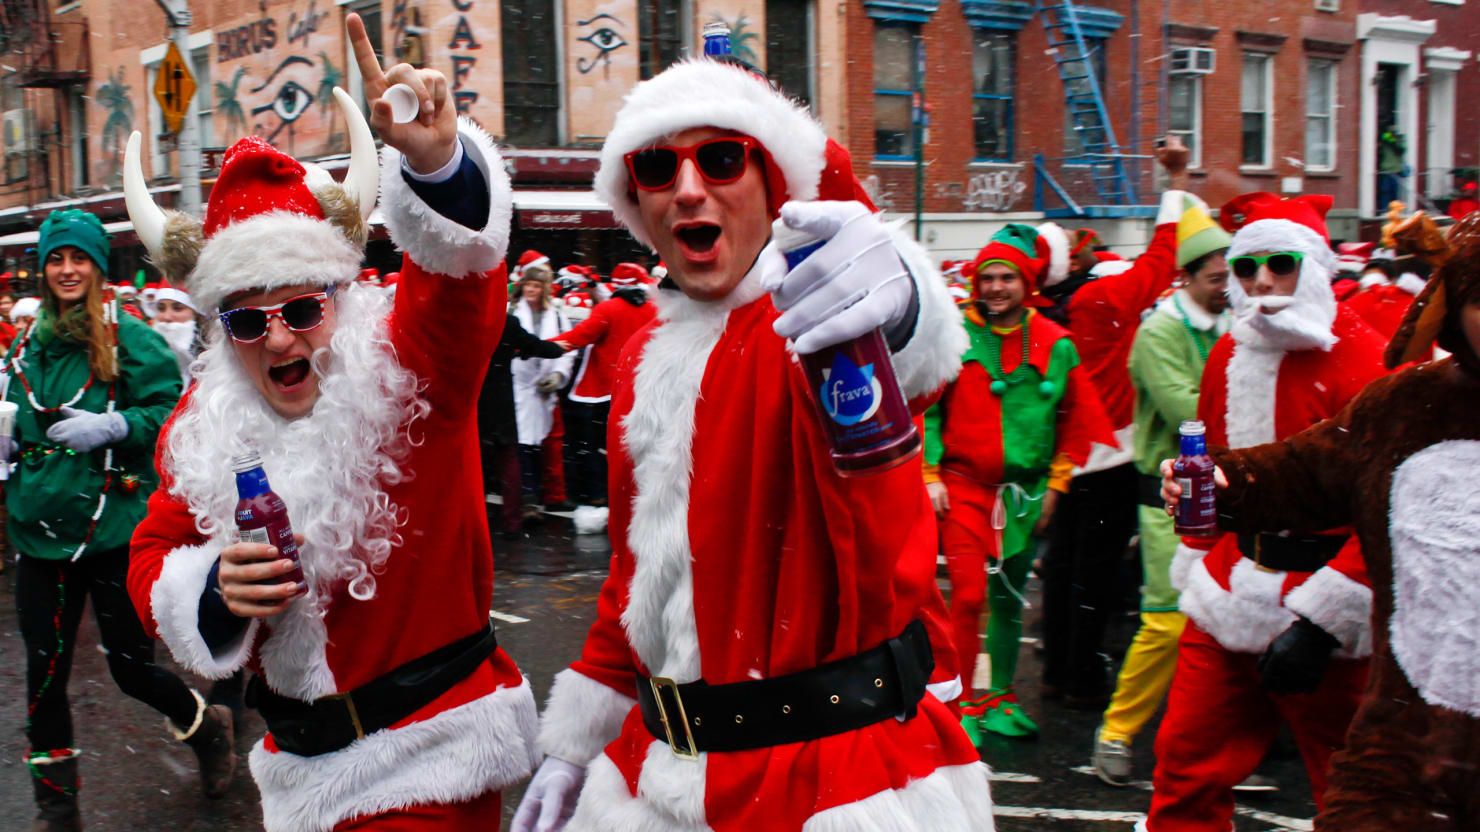 Before The Bros Santacon Was As An Anti Corporate Protest